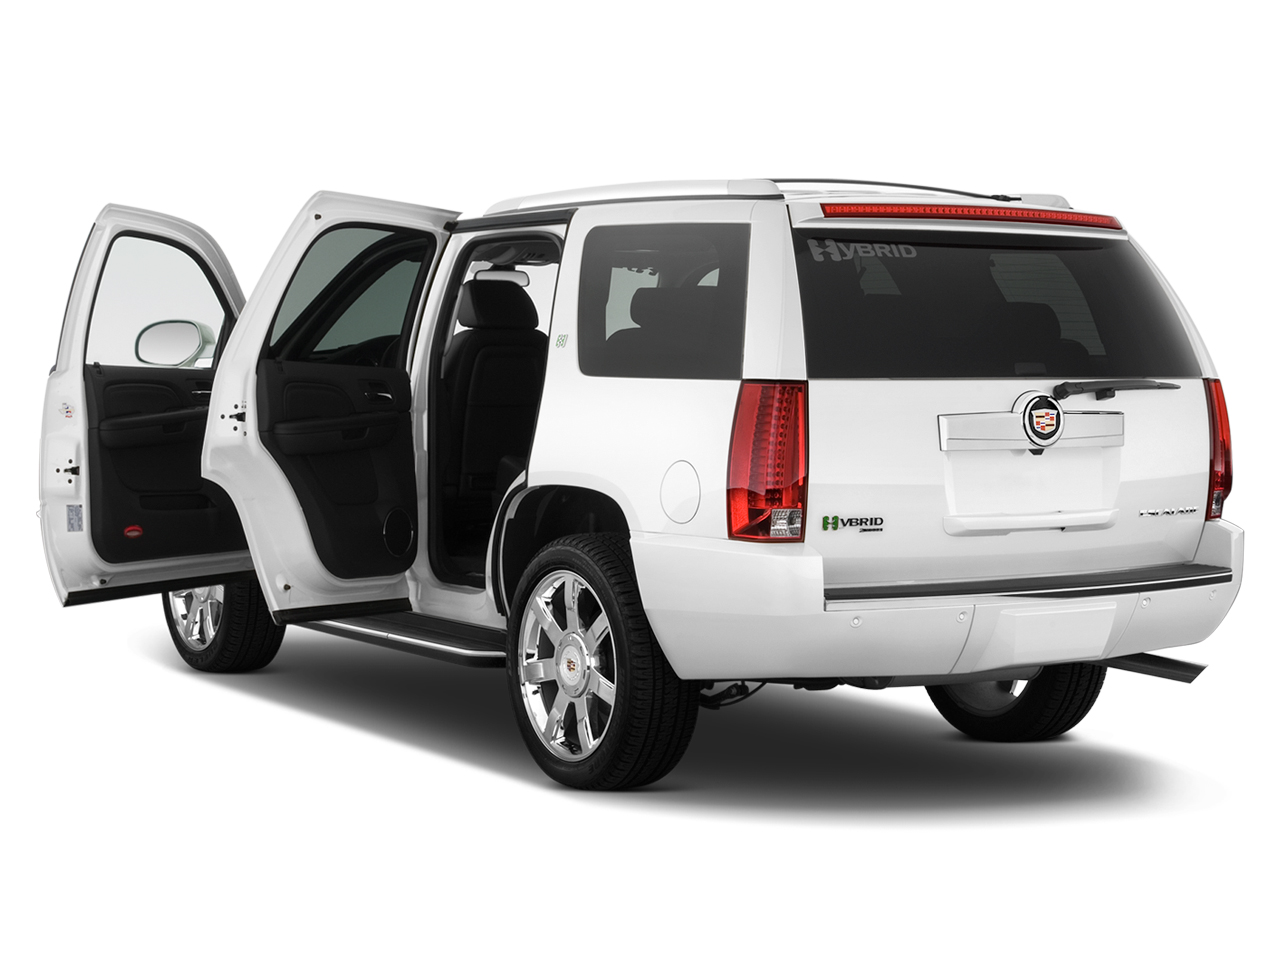 2011 Cadillac Escalade Hybrid Review Ratings Specs Prices and Photos - The Car Connection  sc 1 st  The Car Connection & 2011 Cadillac Escalade Hybrid Review Ratings Specs Prices and ... pezcame.com